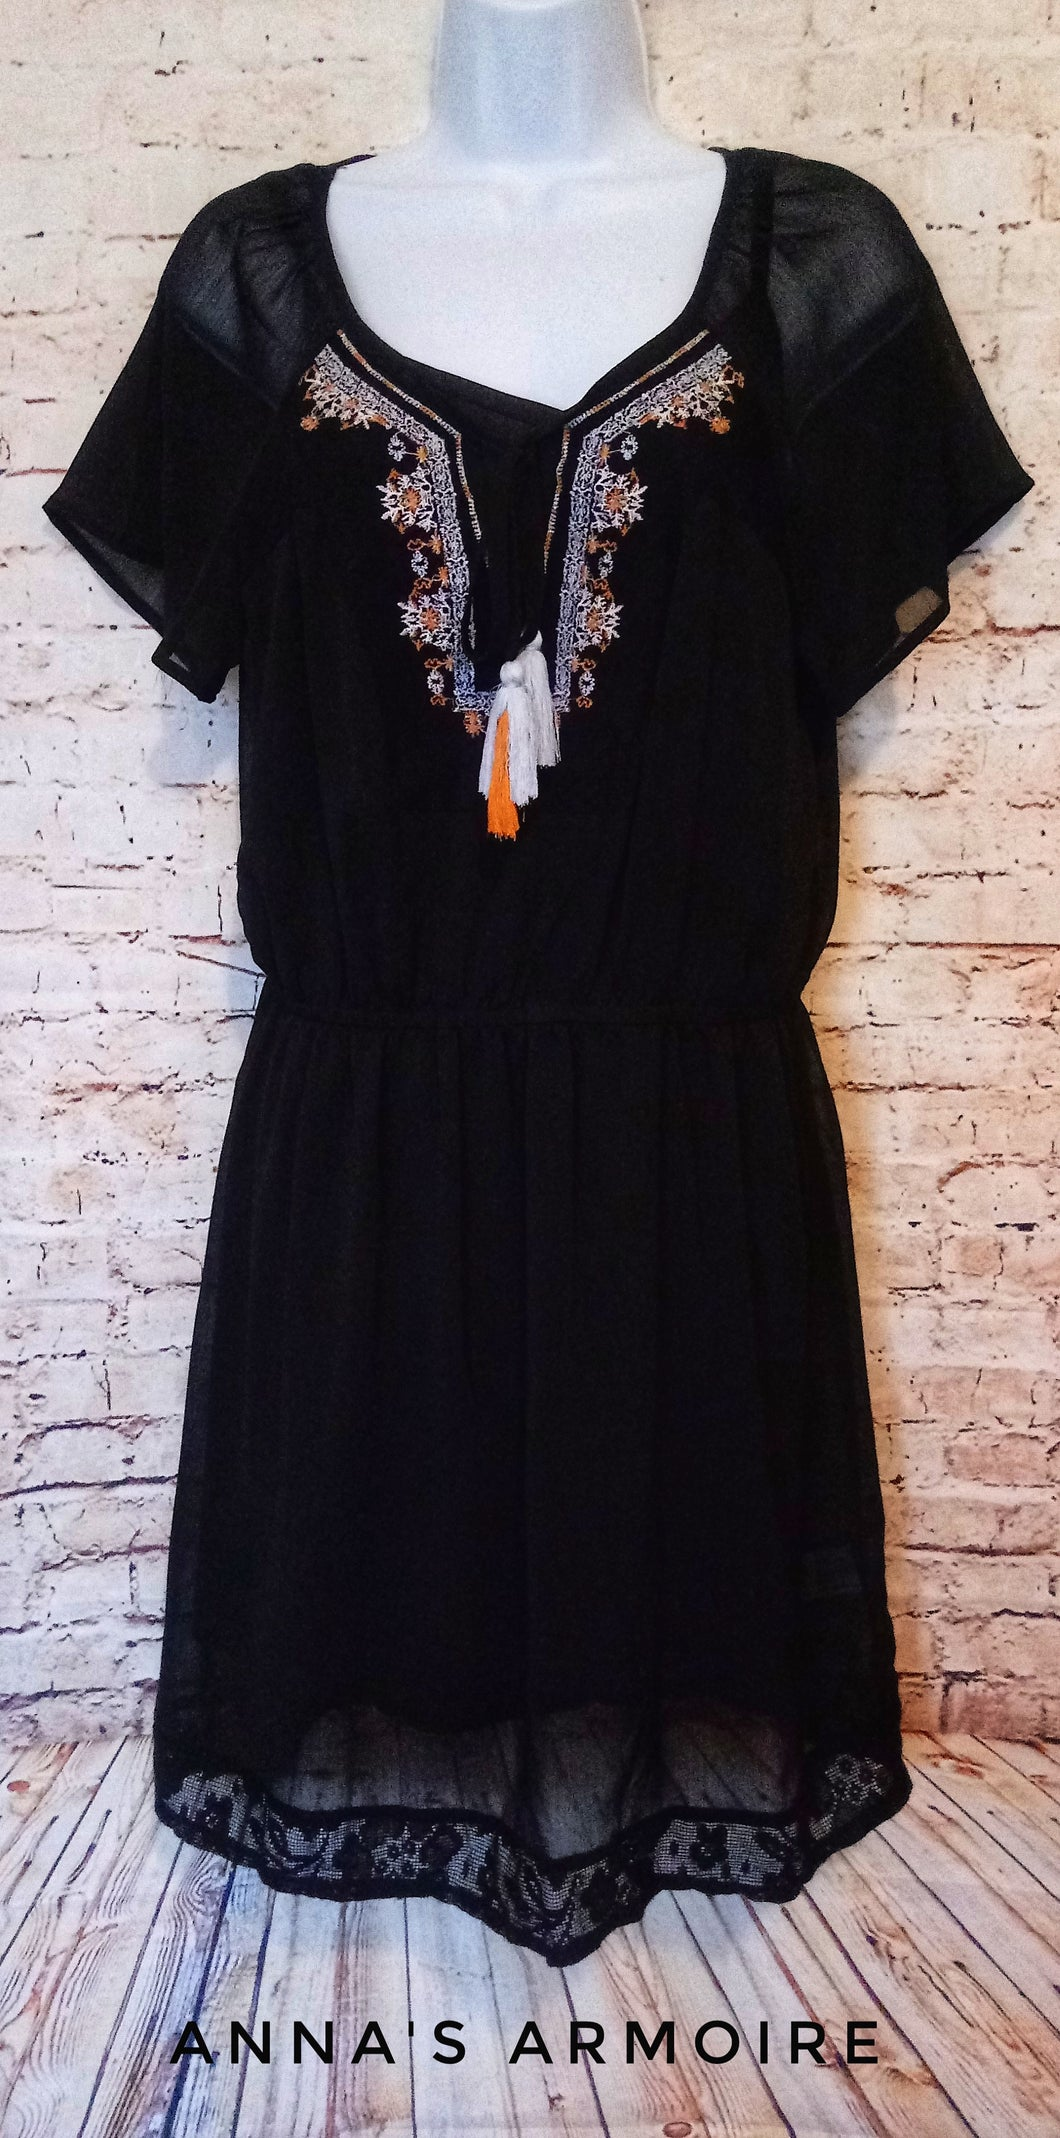 Knox Rose Sheer Dress Size M - Anna's Armoire